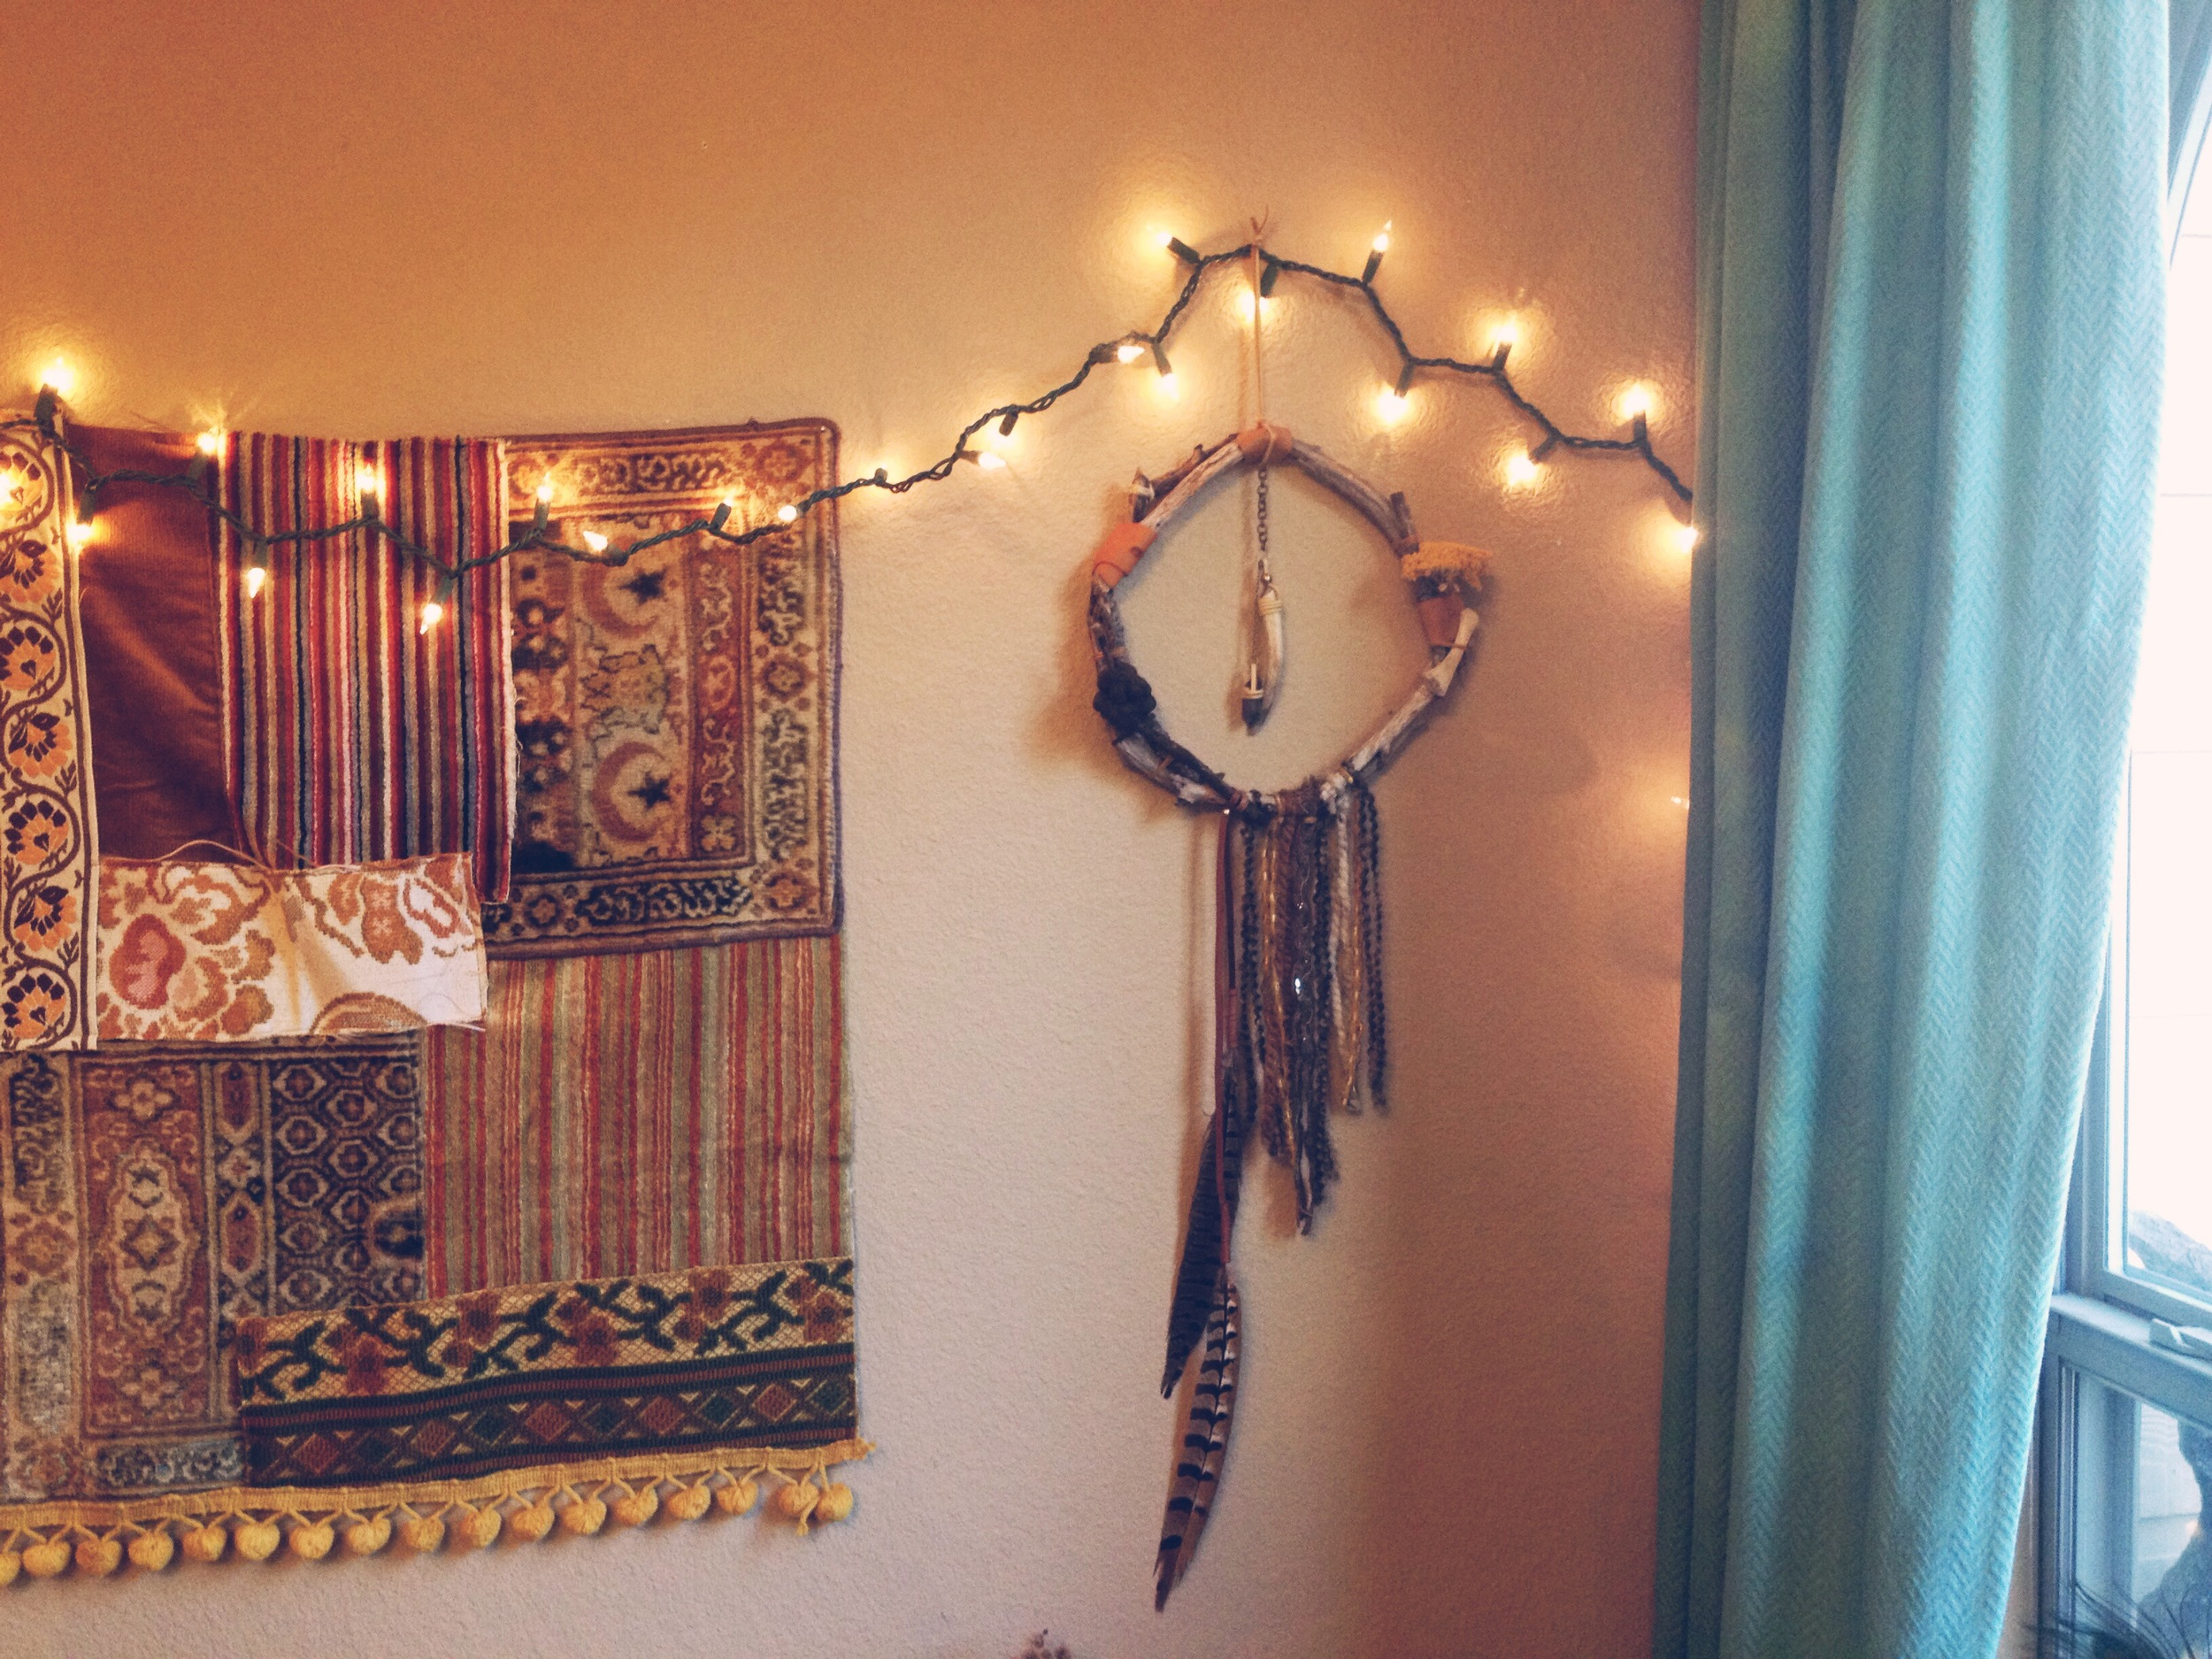 One of the many custom dreamcatchers I created this week...